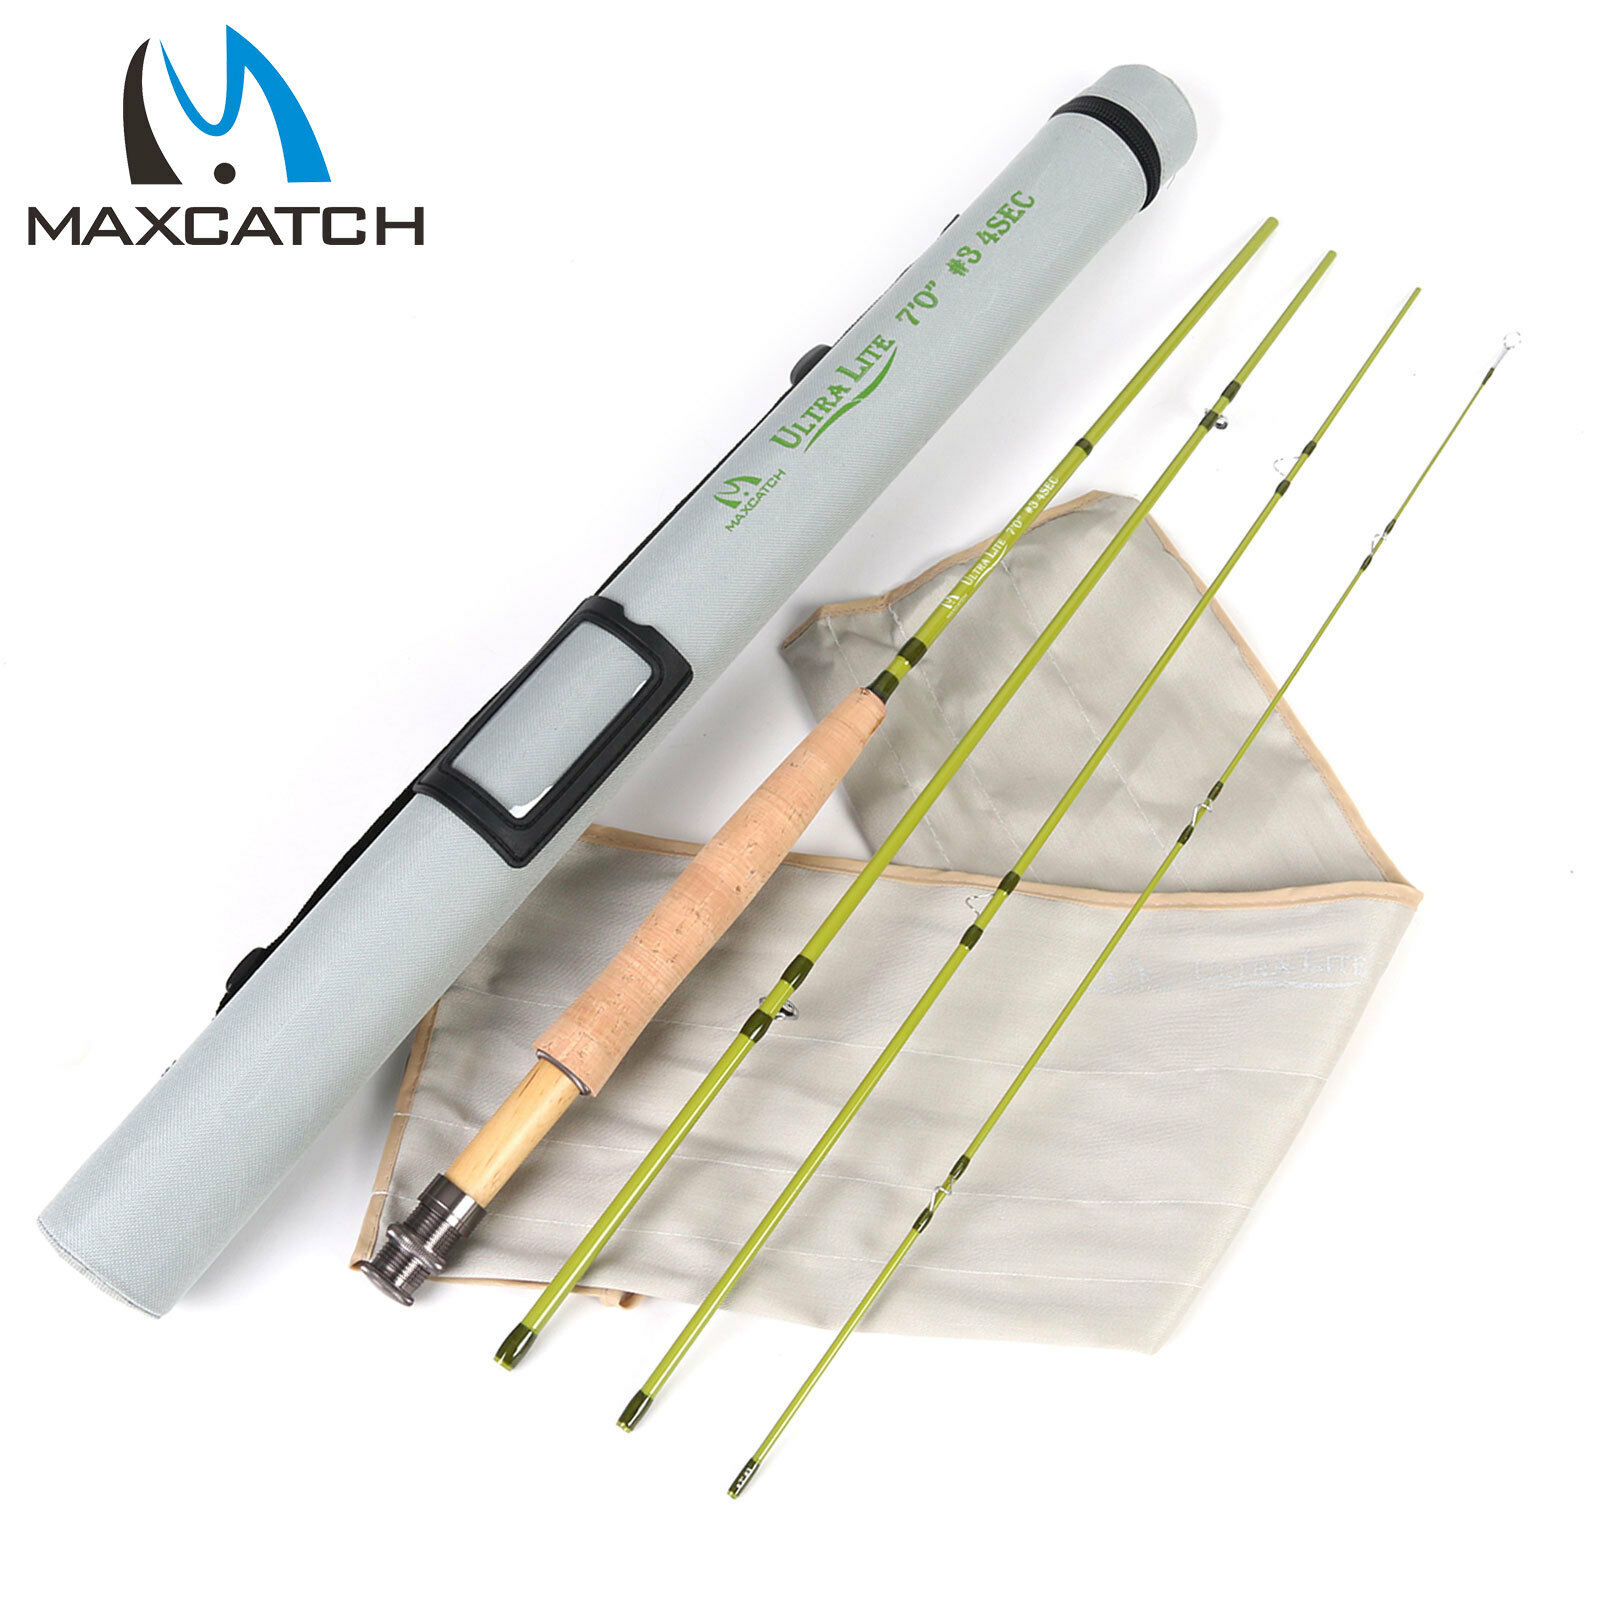 Maxcatch 123WT Fly Fishing Rod 6'6'67'7'6 For Small Streams PanfishTrout